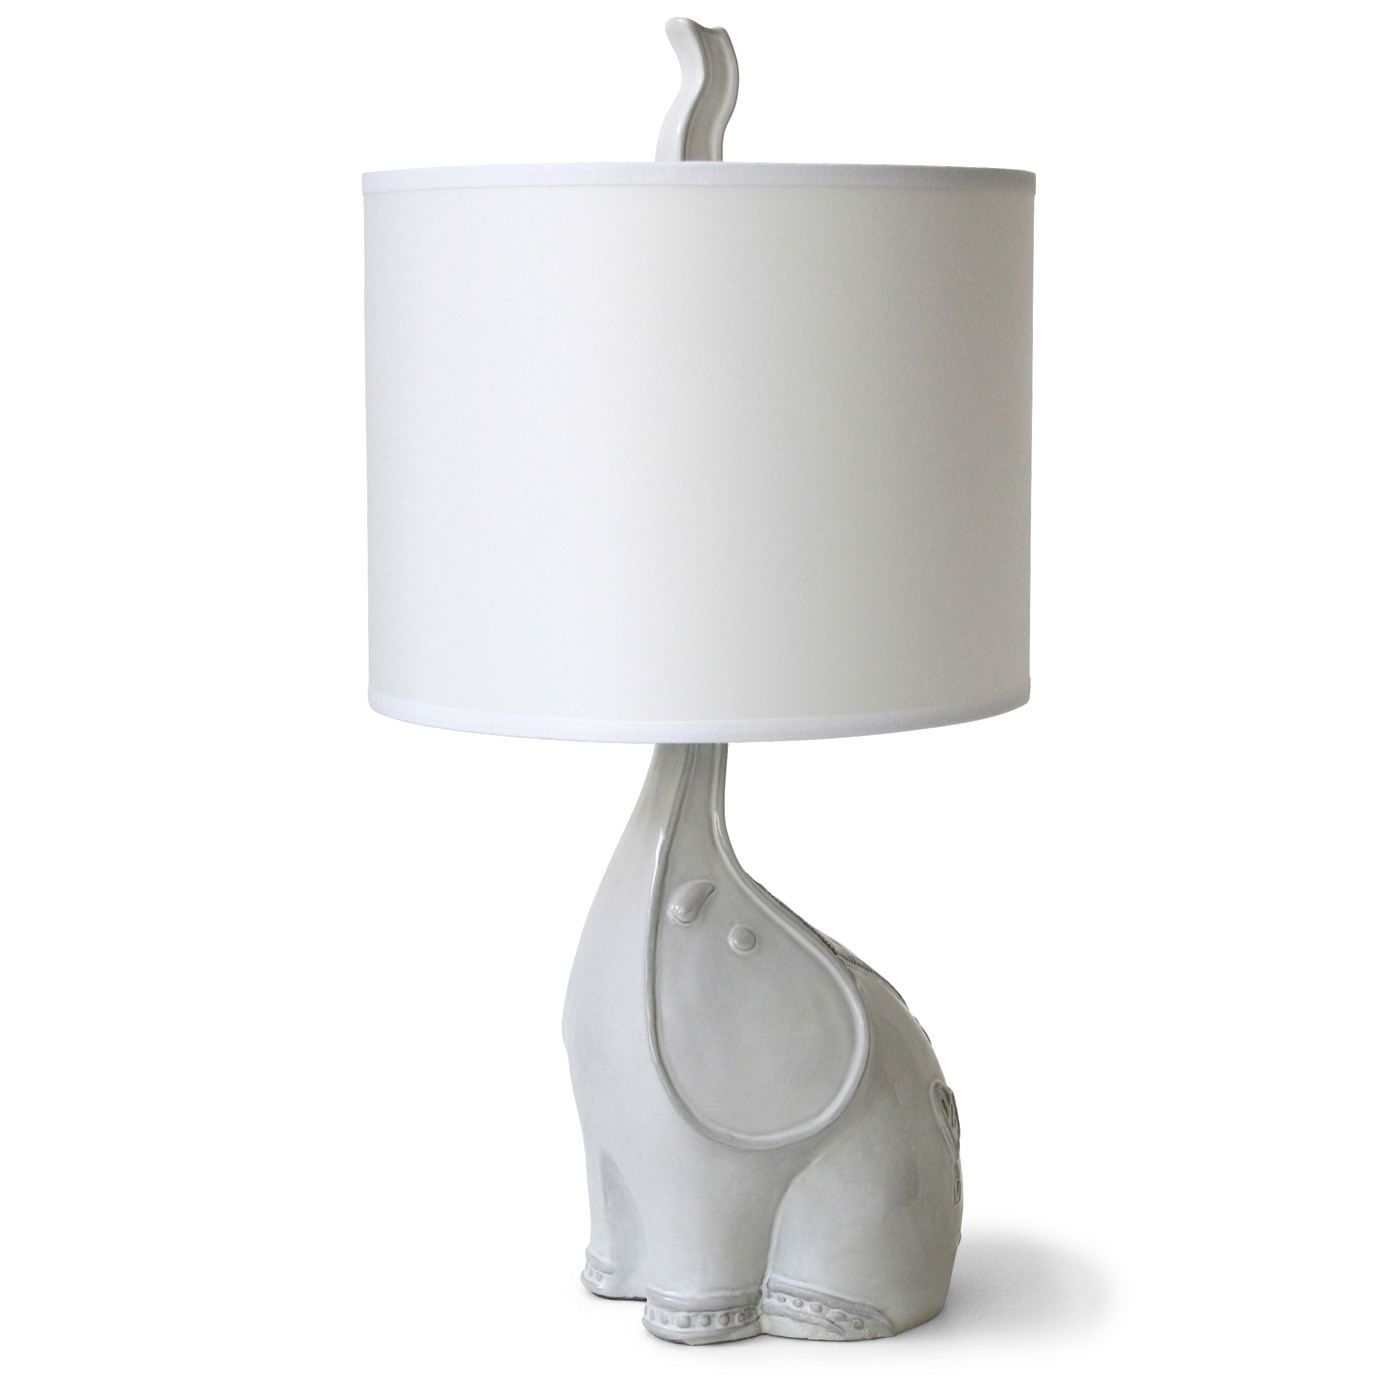 pin high lamps elephant playroom any easily your table our kids quality nursery brighten or room lamp nurseryelephant